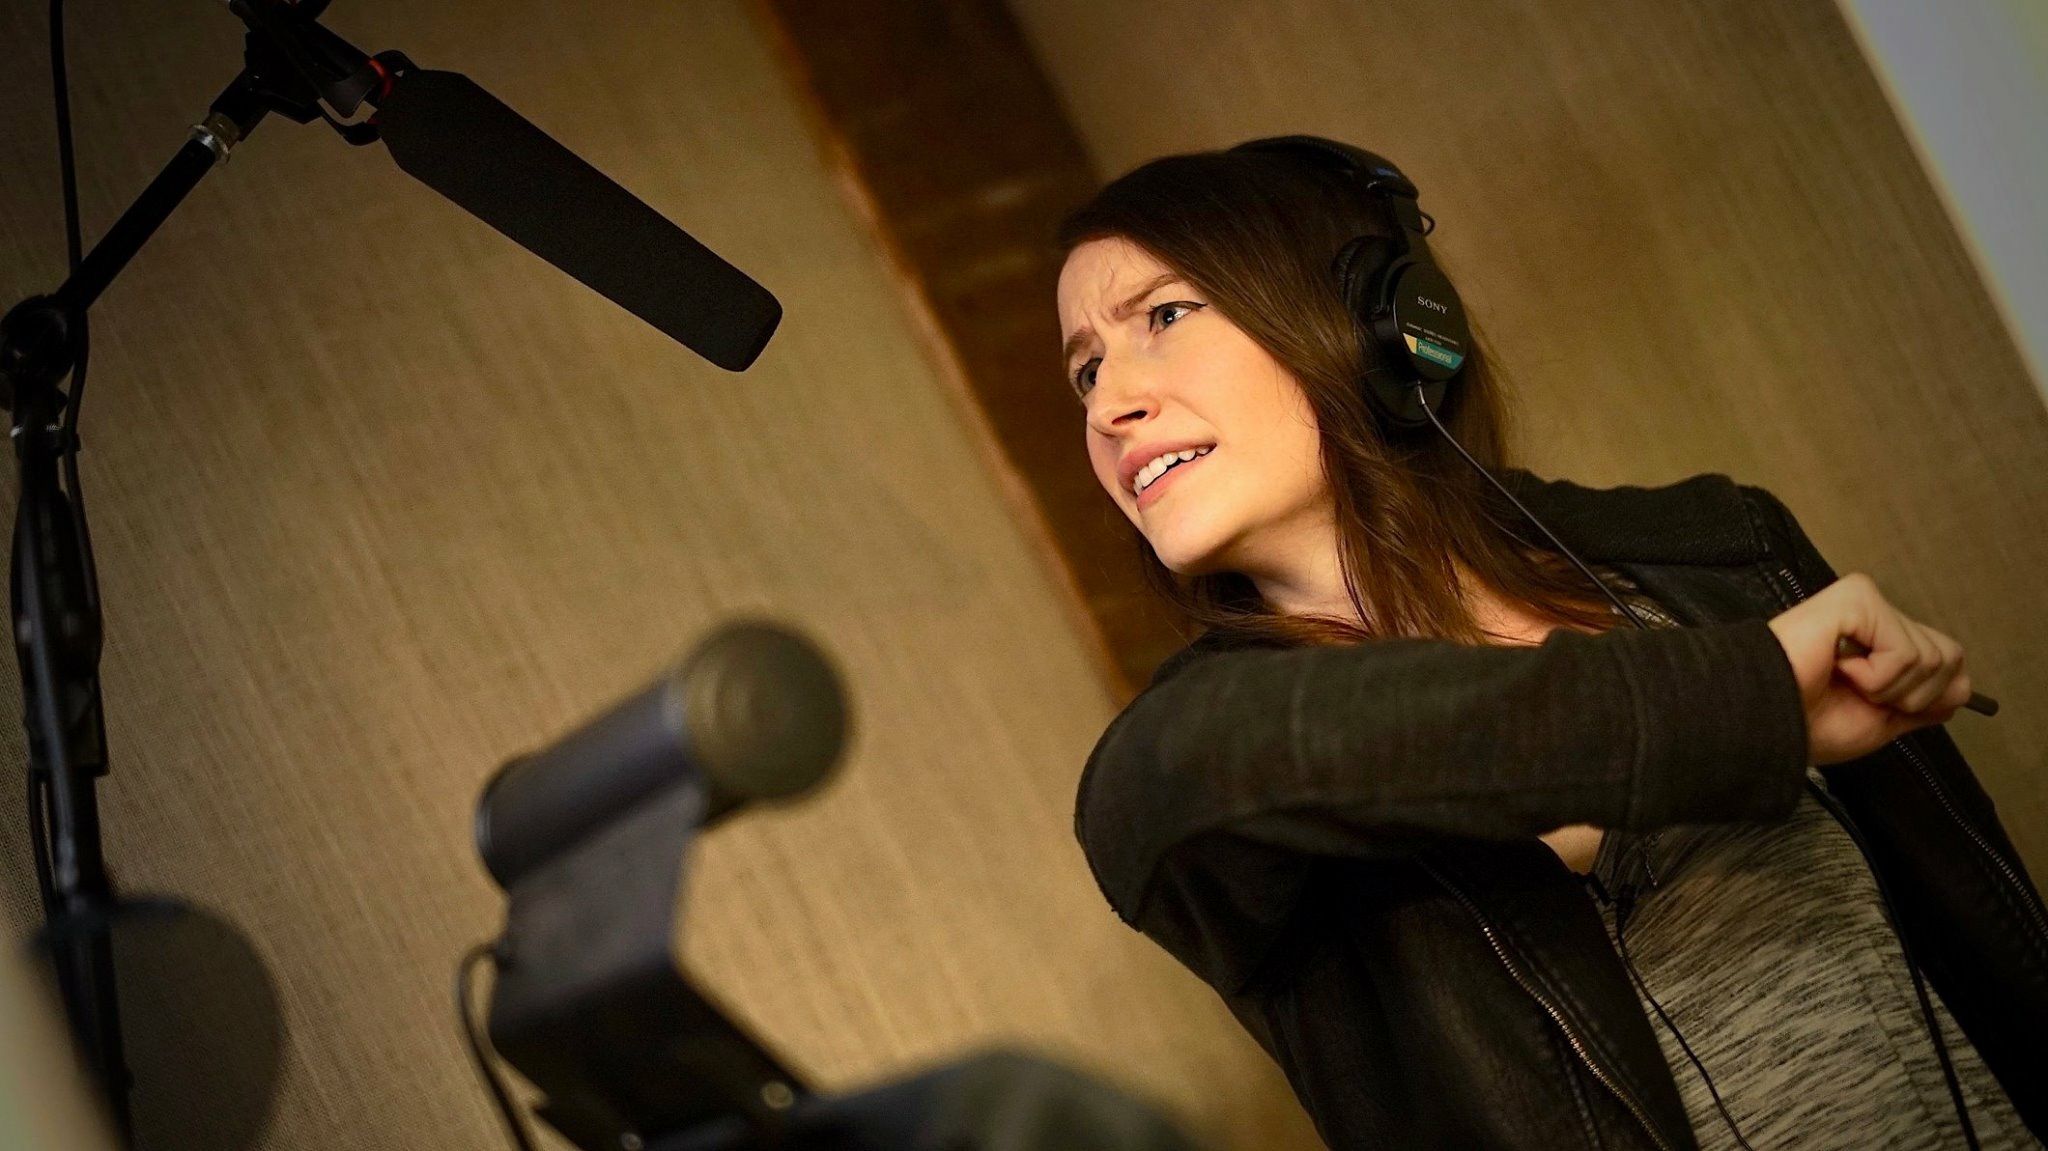 Chloe Carroll recording ADR for The Honeymoon Phase in New York |  Courtesy of Phillip G. Carroll Jr.